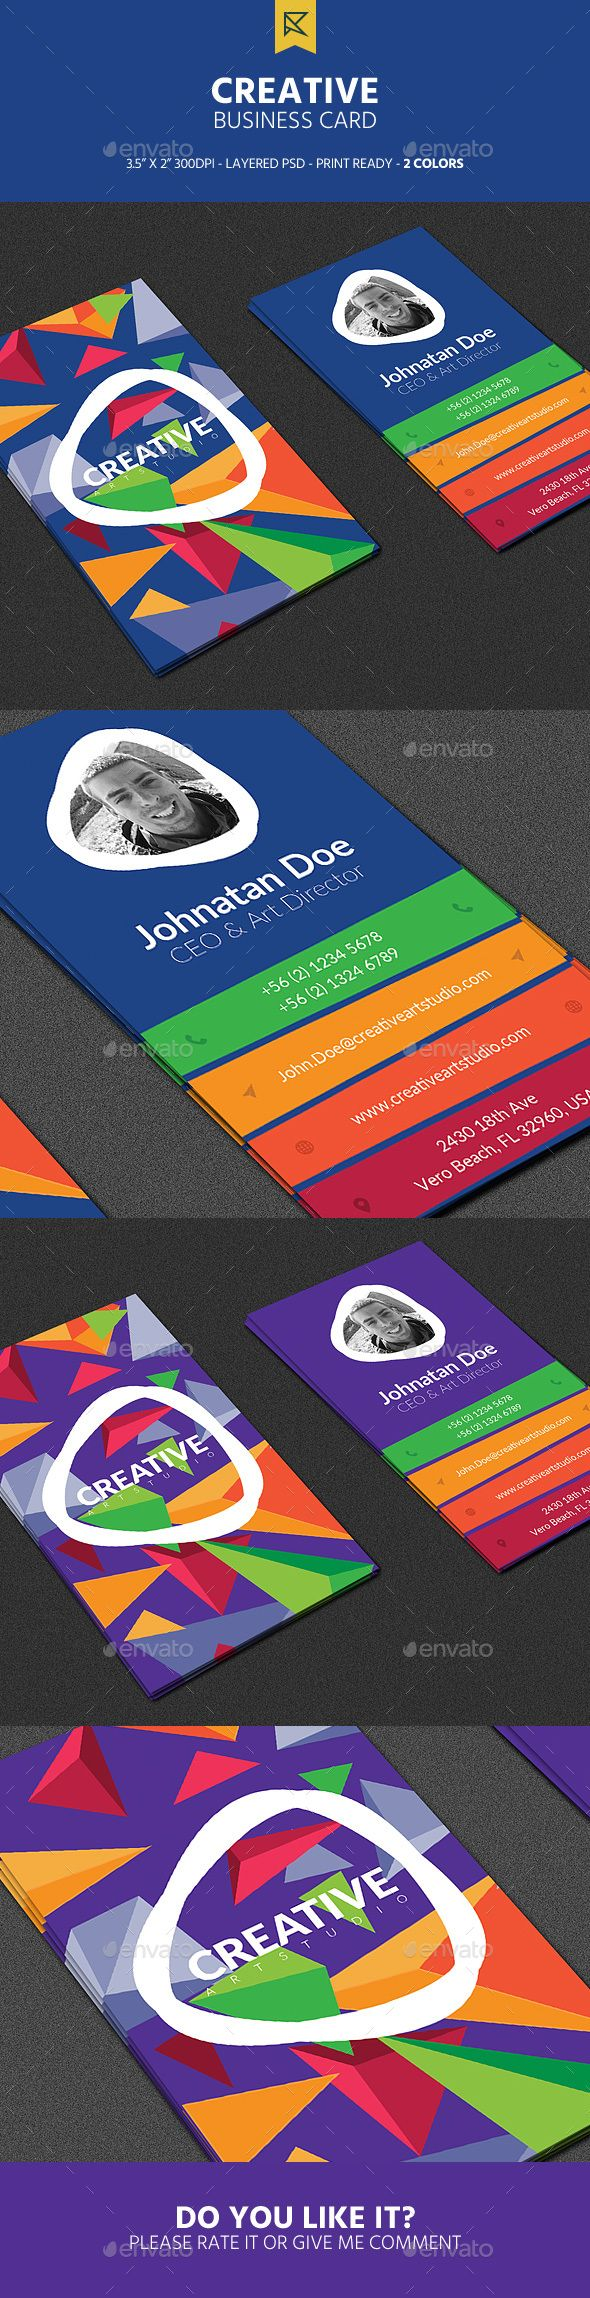 Creative Business Card - Creative Business Cards Download here : https://graphicriver.net/item/creative-business-card/18943551?s_rank=104&ref=Al-fatih